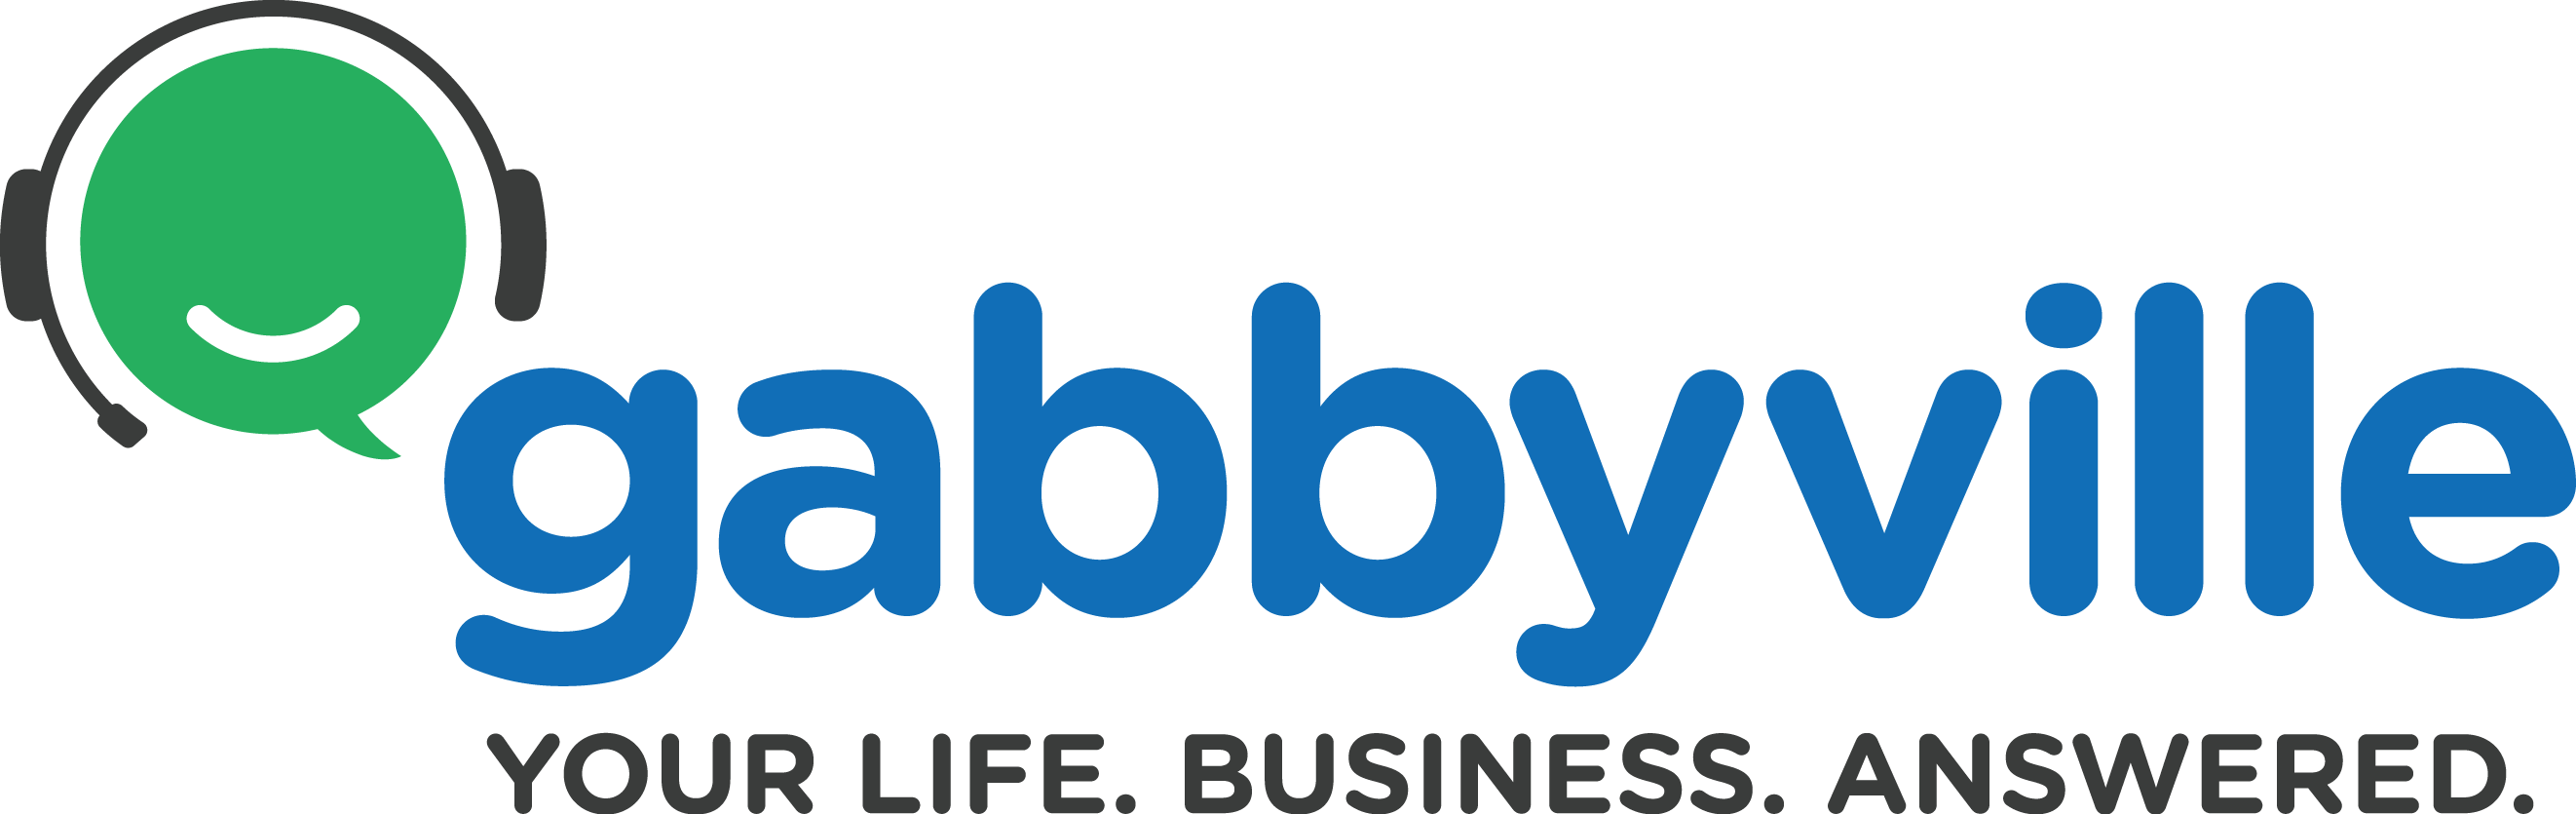 gabbyville inc jobs part time telecommuting or flexible working company logo